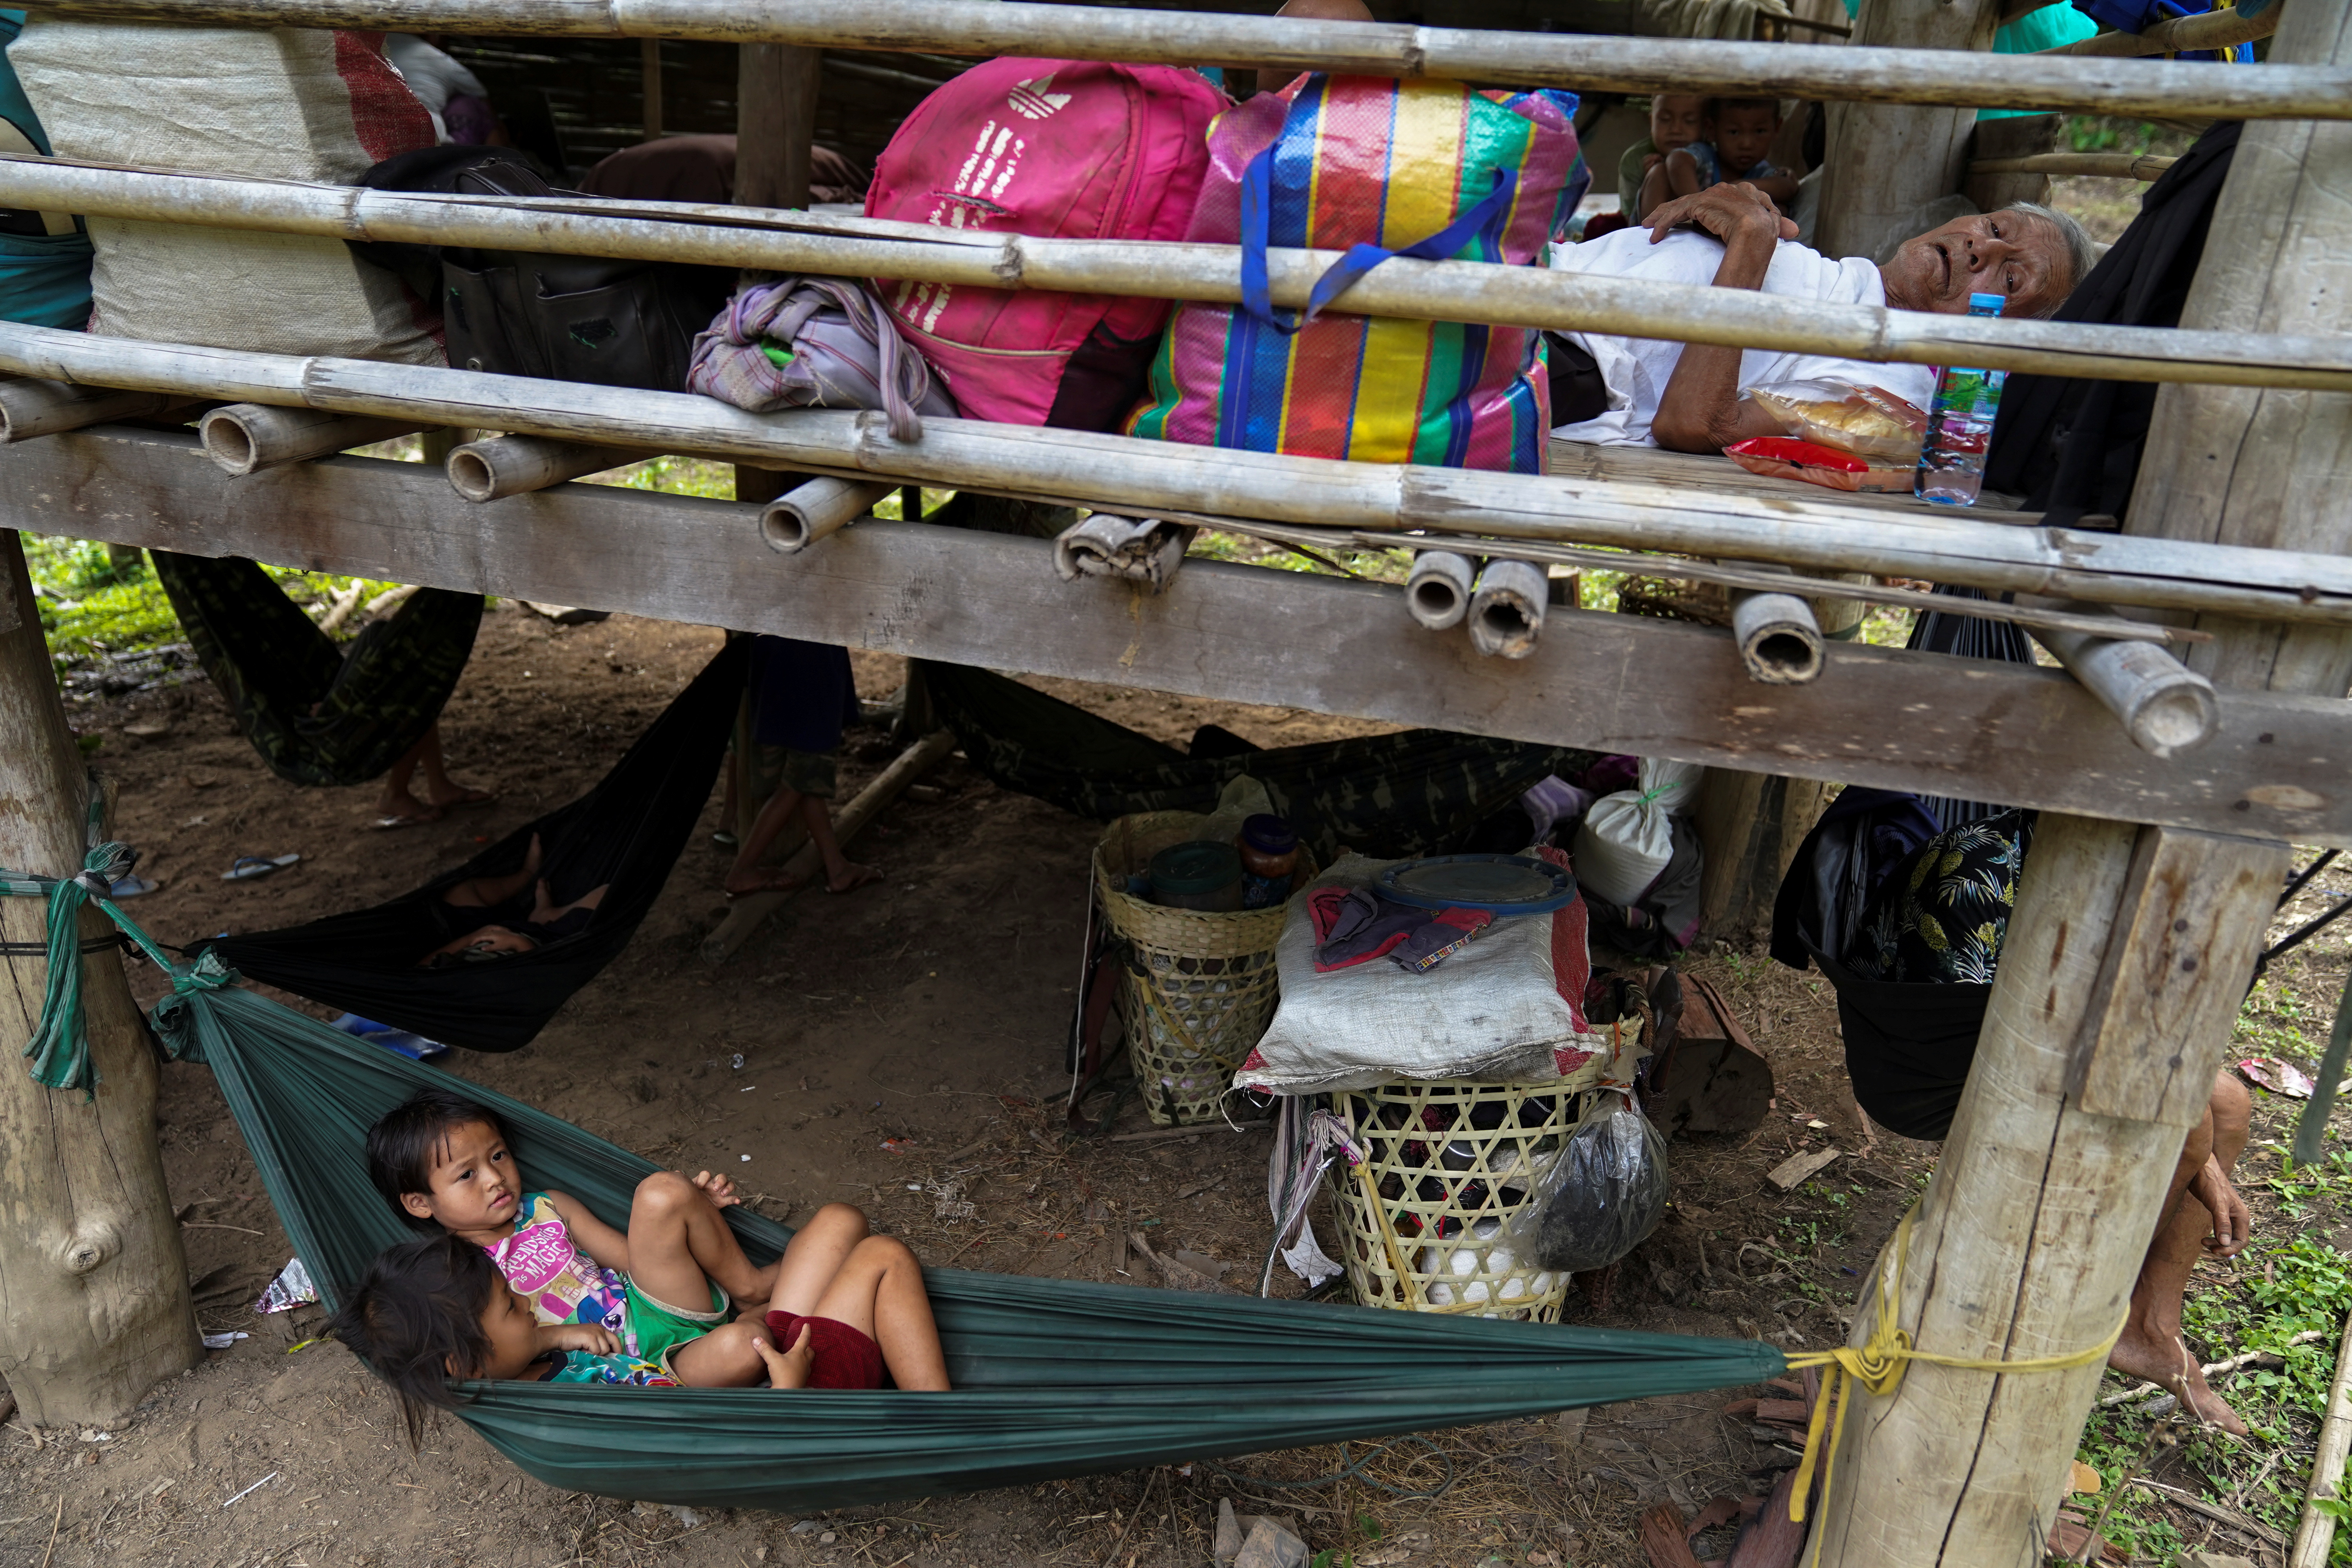 Villagers who fled Myanmar's Ee Thu Hta displacement camp rest in Mae Hong Son province, Thailand, near the border while fleeing from gunfire between ethnic minority Karen insurgents and Myanmar military, April 29, 2021. REUTERS/Athit Perawongmetha